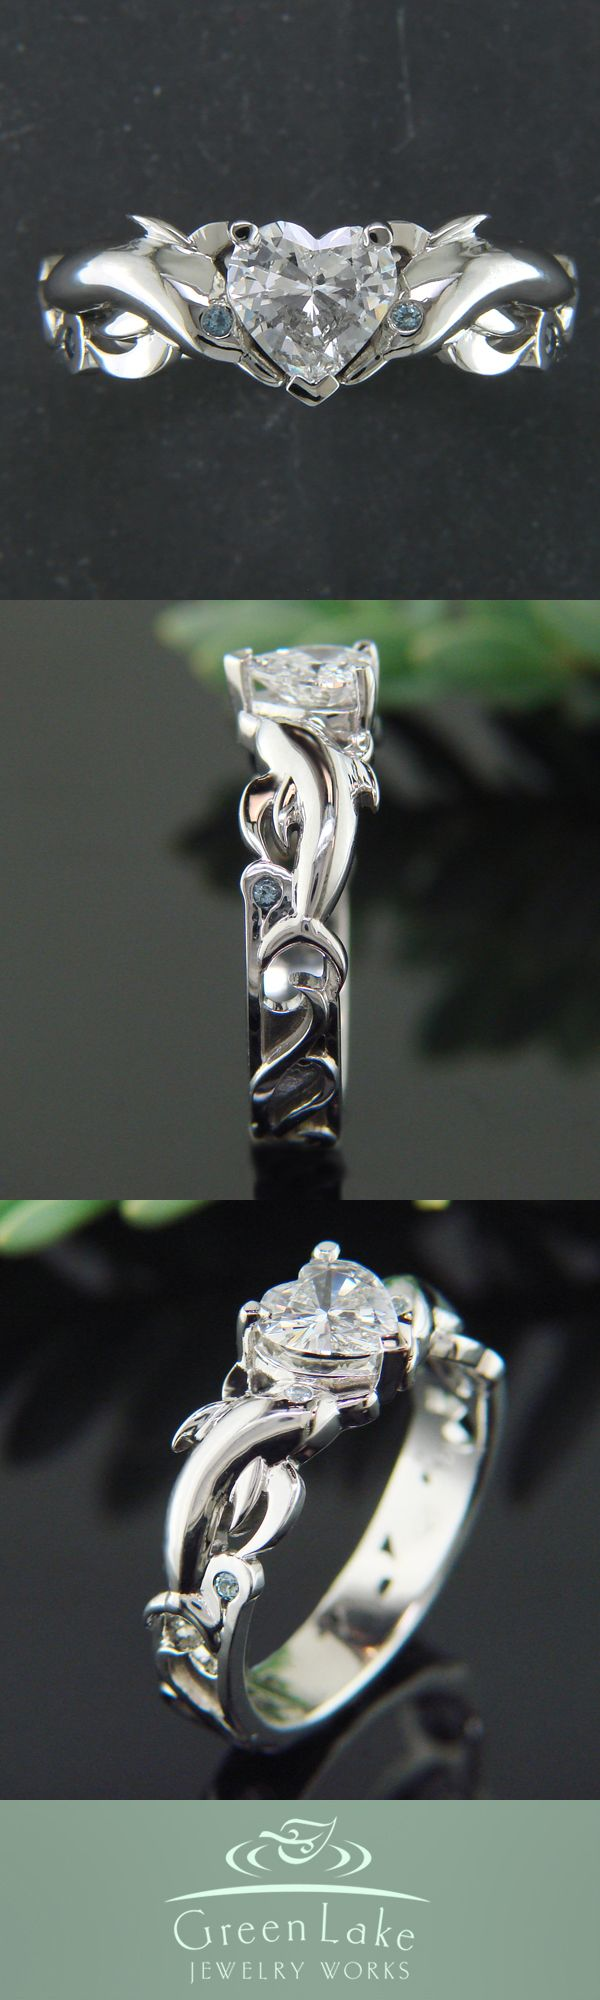 Engagement Ring  Custom Dolphin Ring In White Gold With A Stunning Heart  Shaped Center Diamond